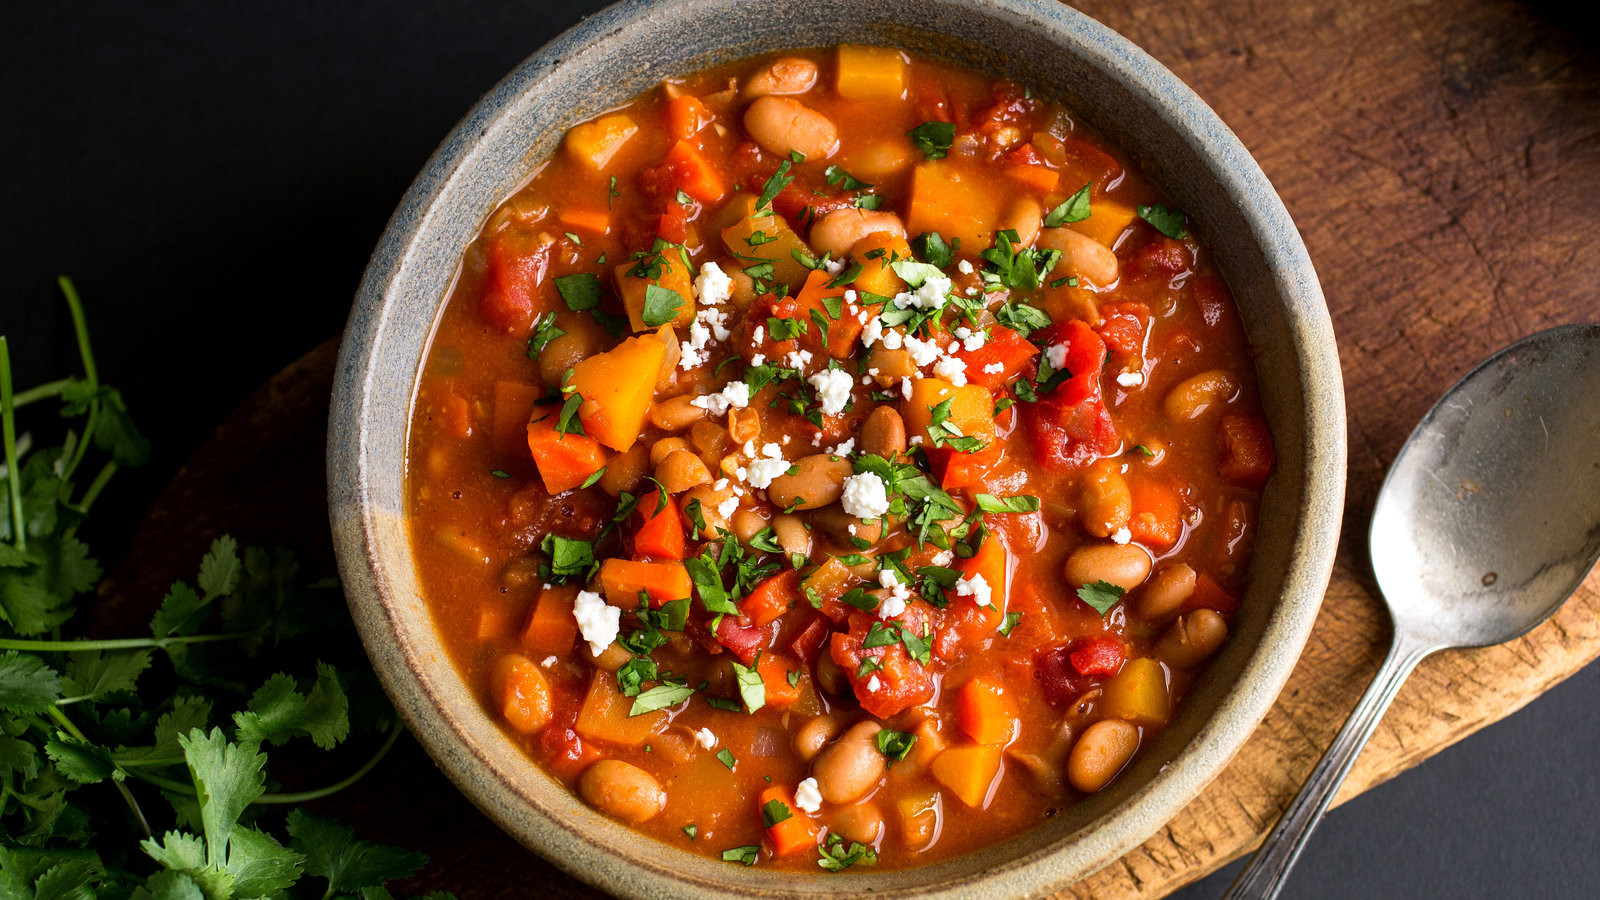 Nytimes Vegetarian Recipes  Ve arian Chili With Winter Ve ables Recipe NYT Cooking